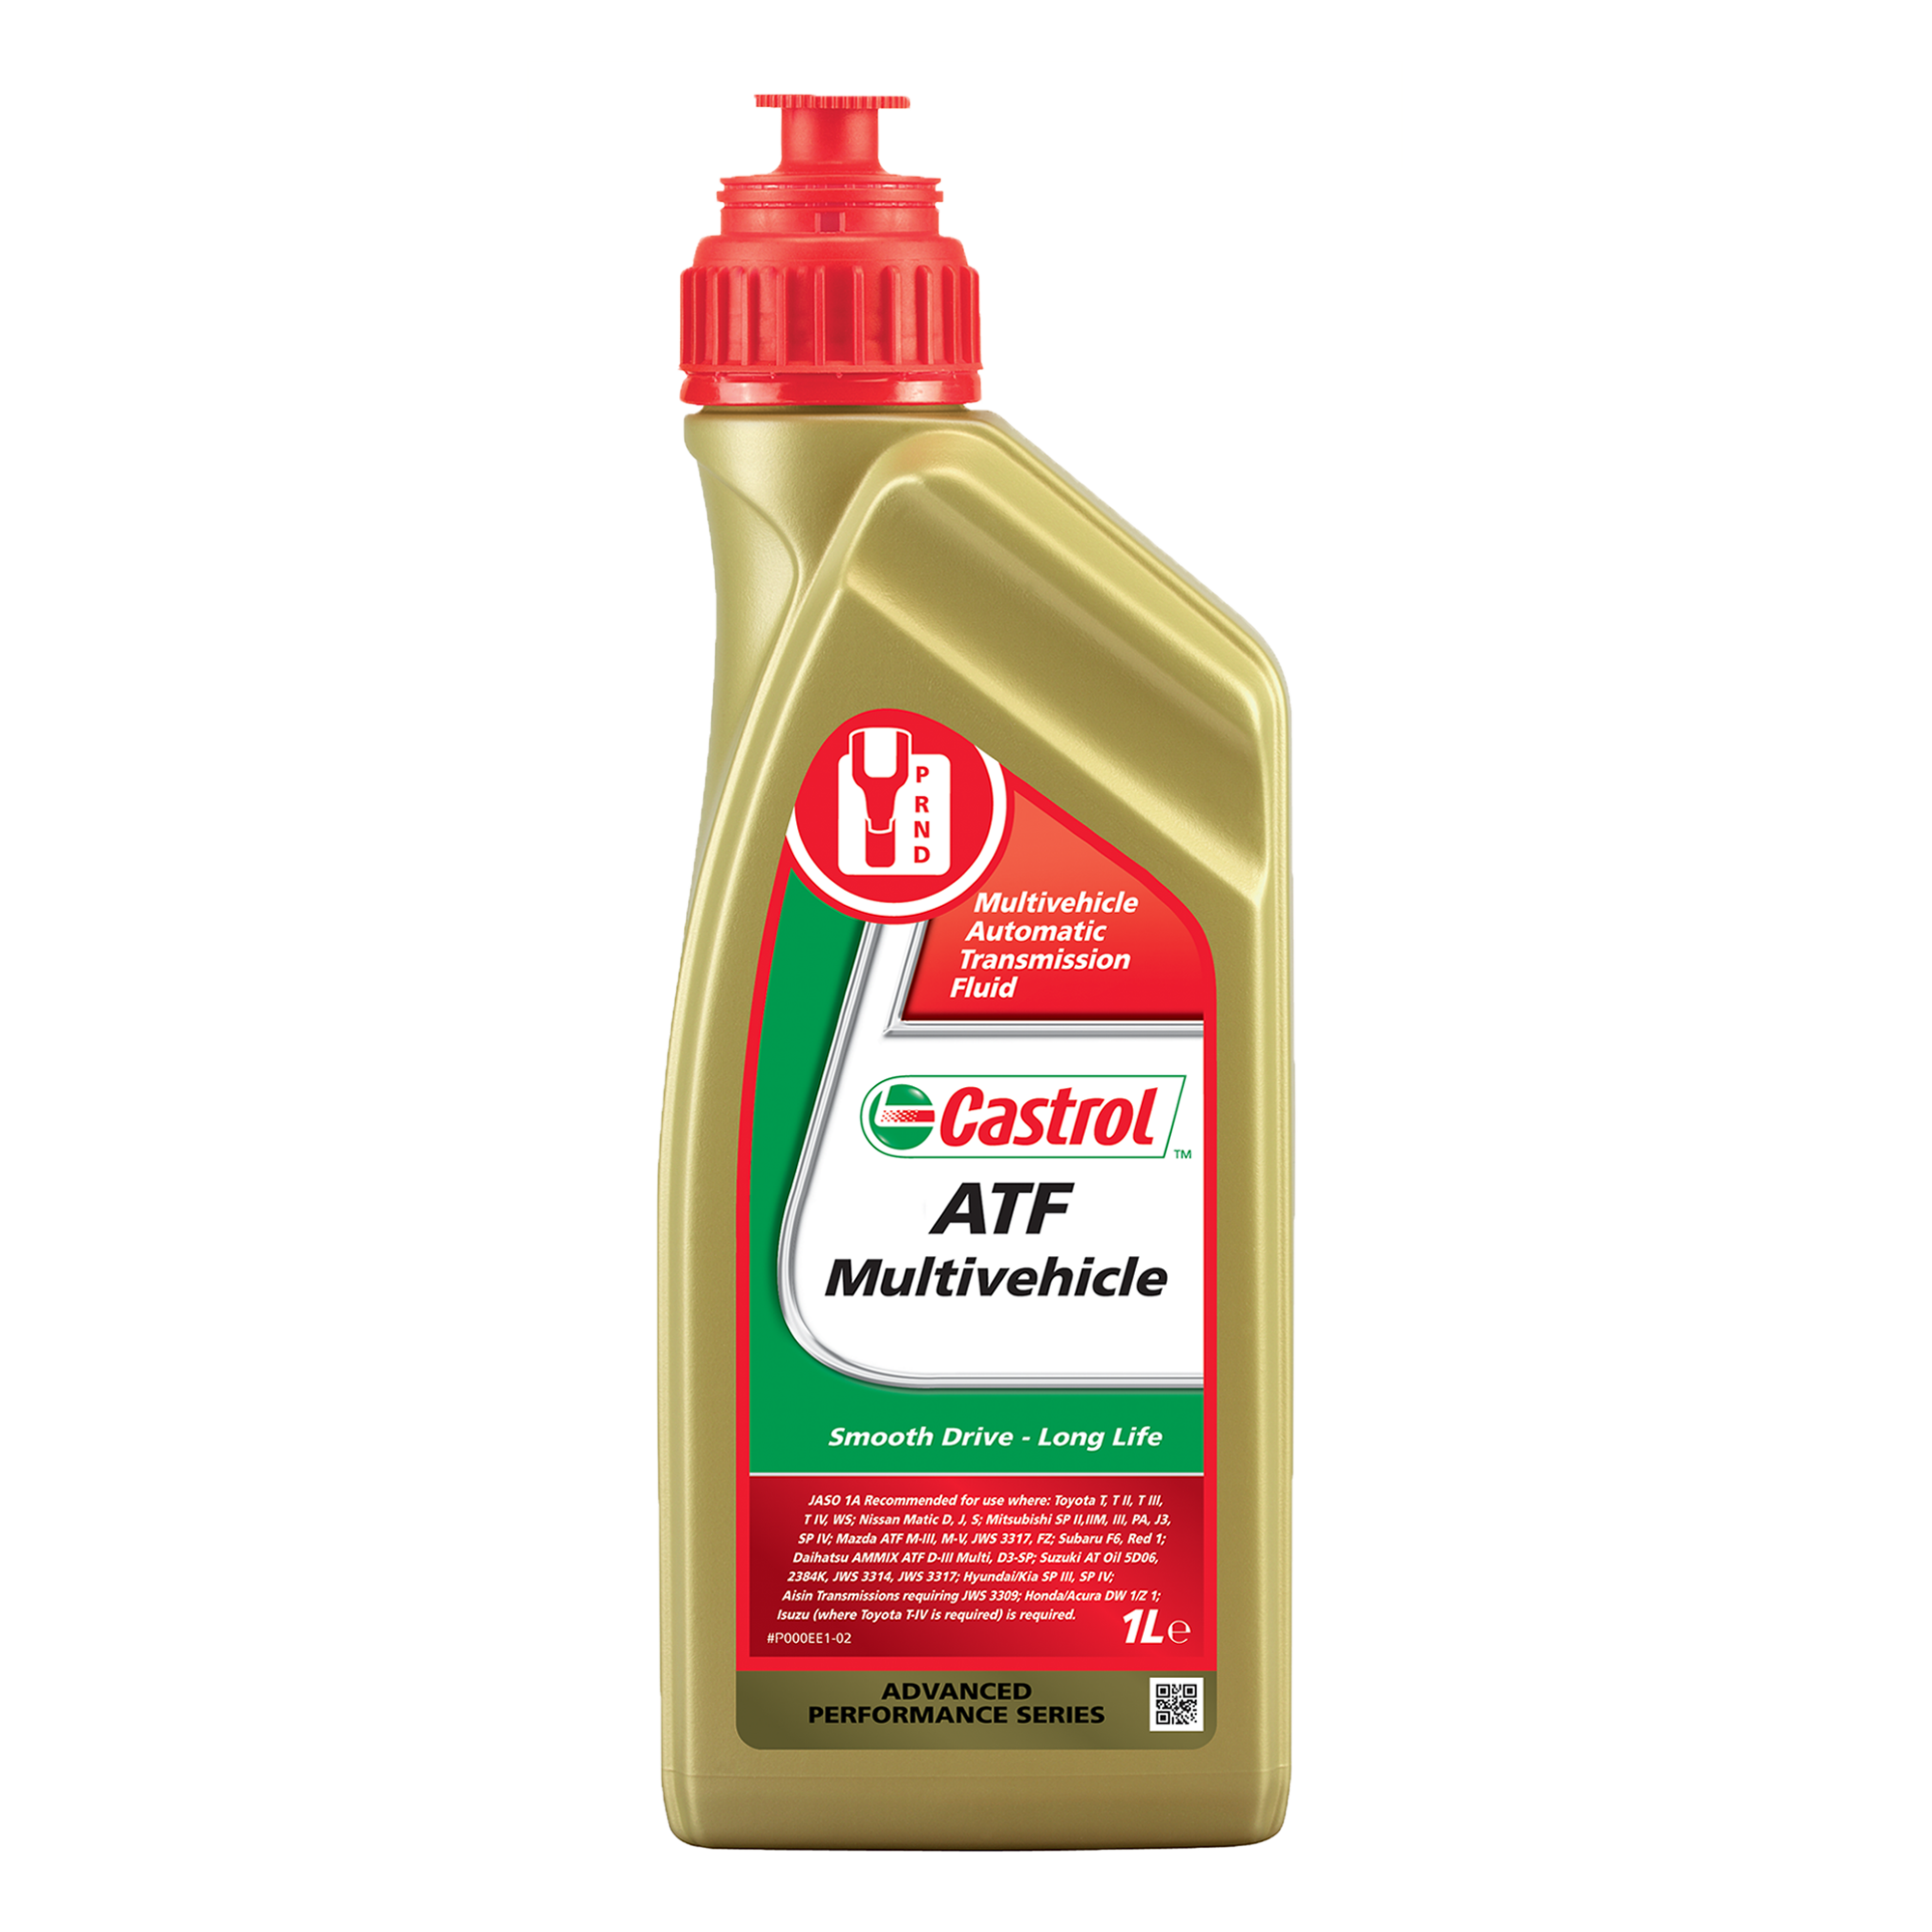 Castrol ATF Multivehicle